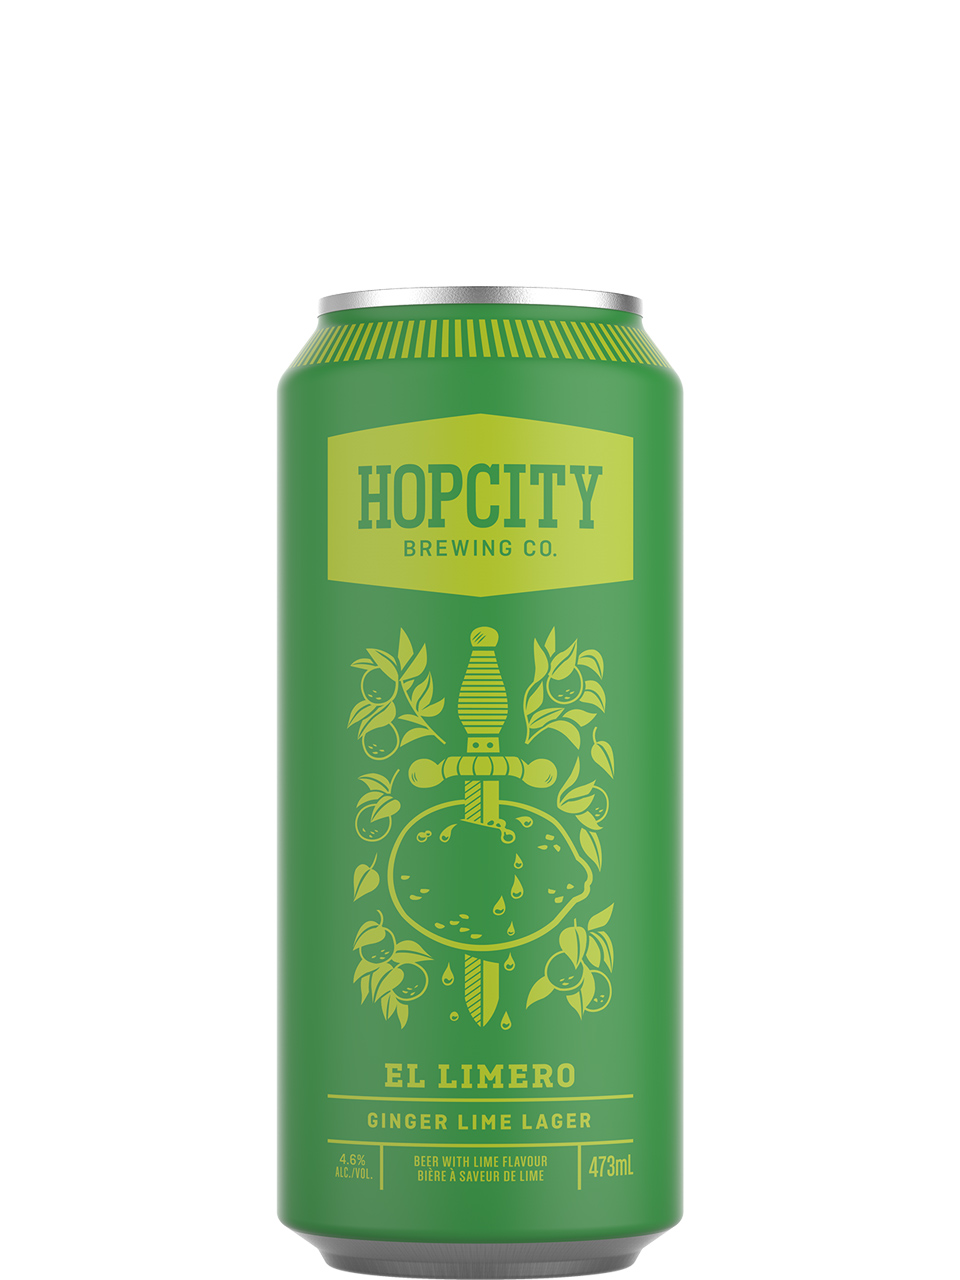 Hop City El Limero Ginger Lime Lager 473ml Can